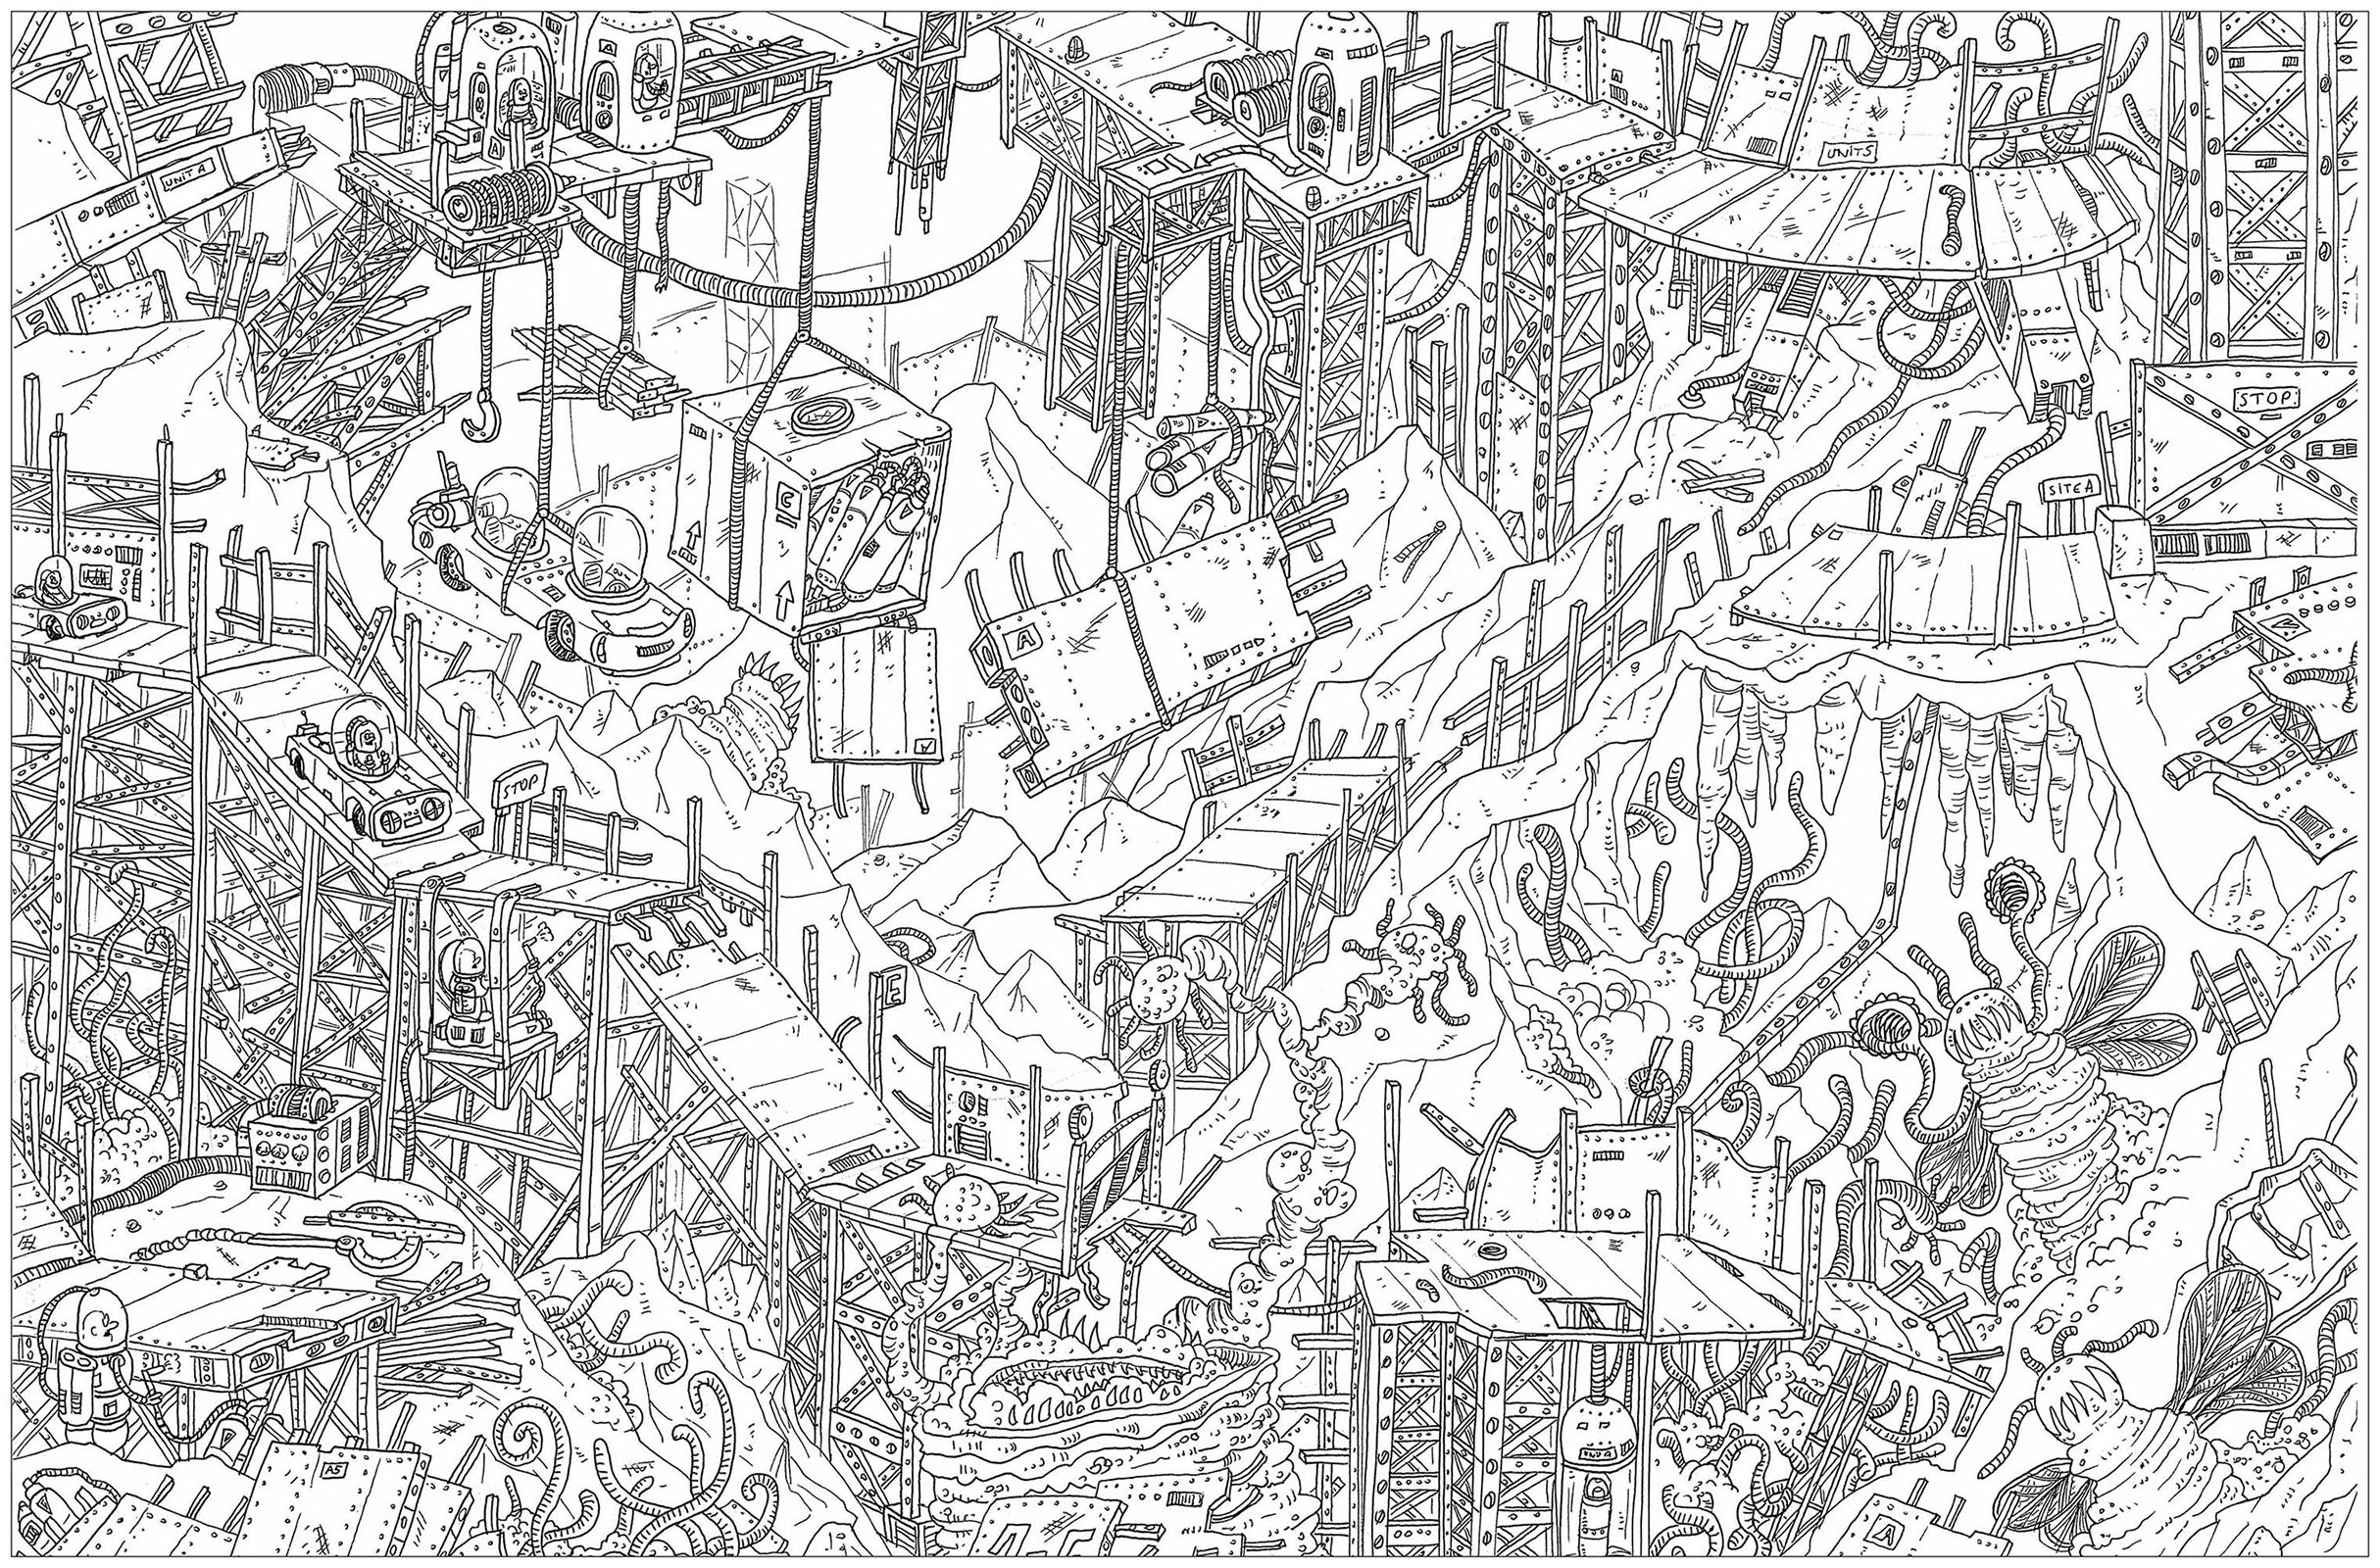 'The planet', a complex coloring page, 'Where is Waldo ?' style